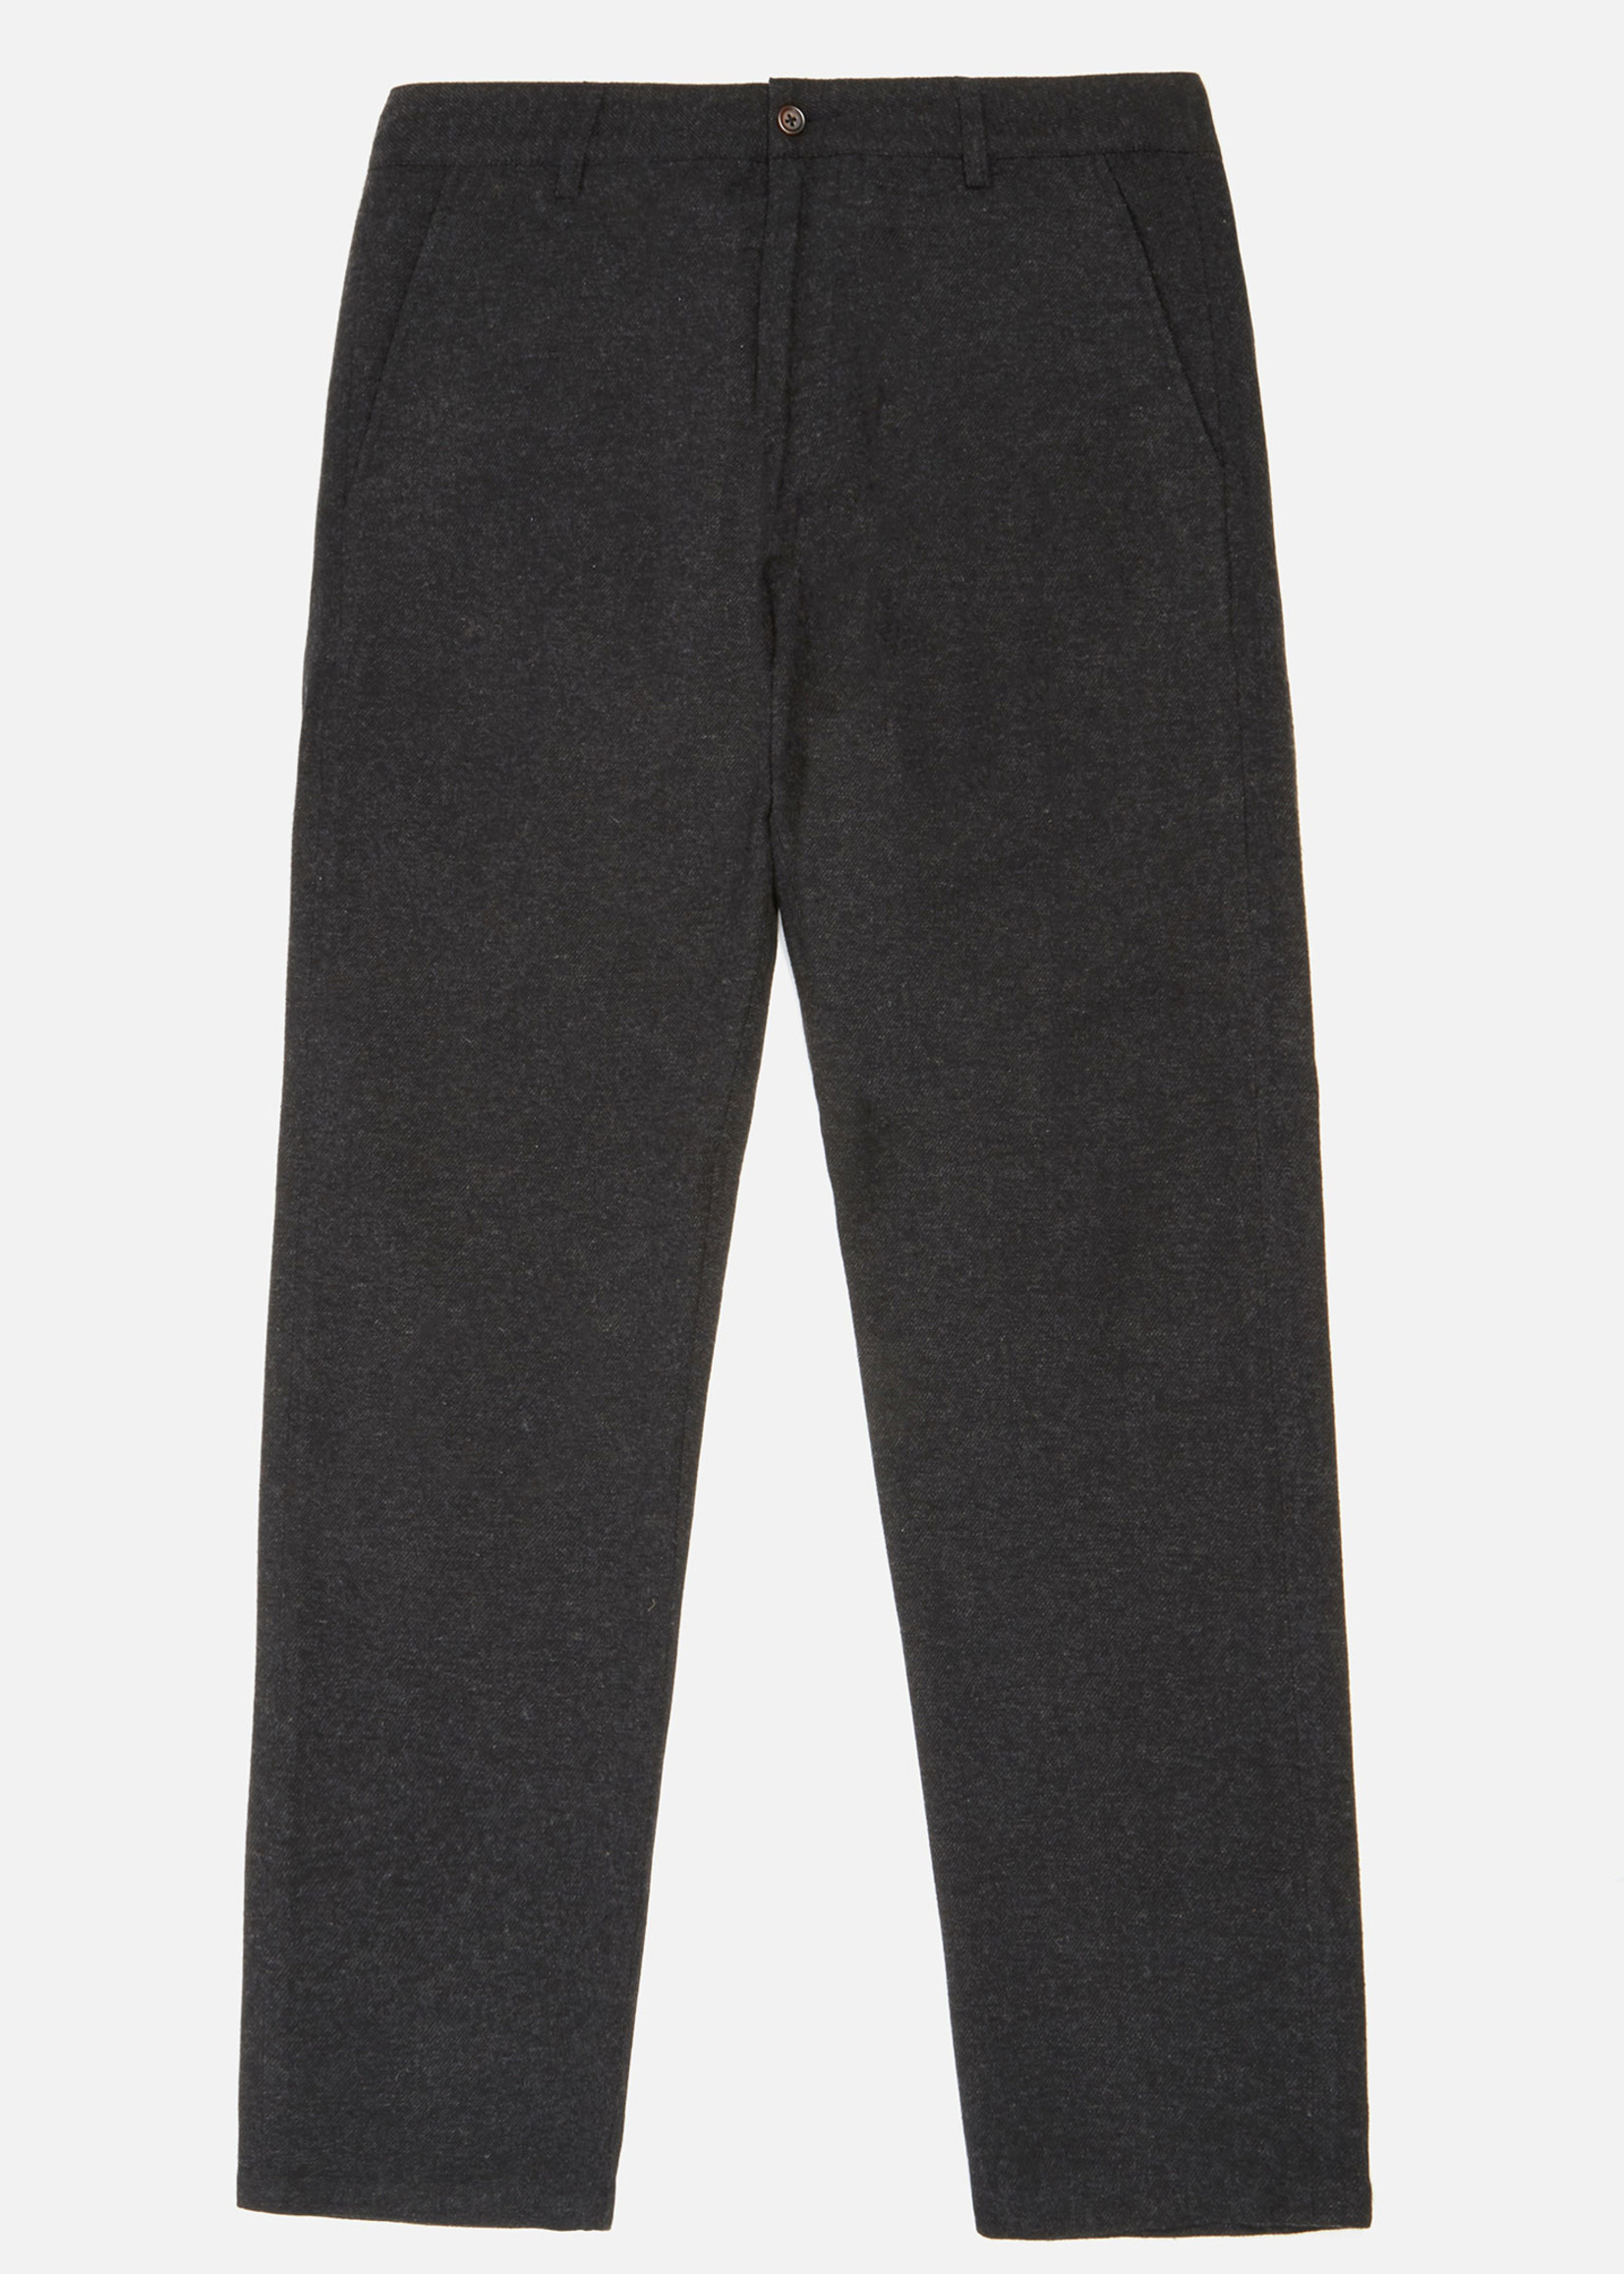 Universal Works Universal Works Aston Pant in Charcoal Wool/Poly